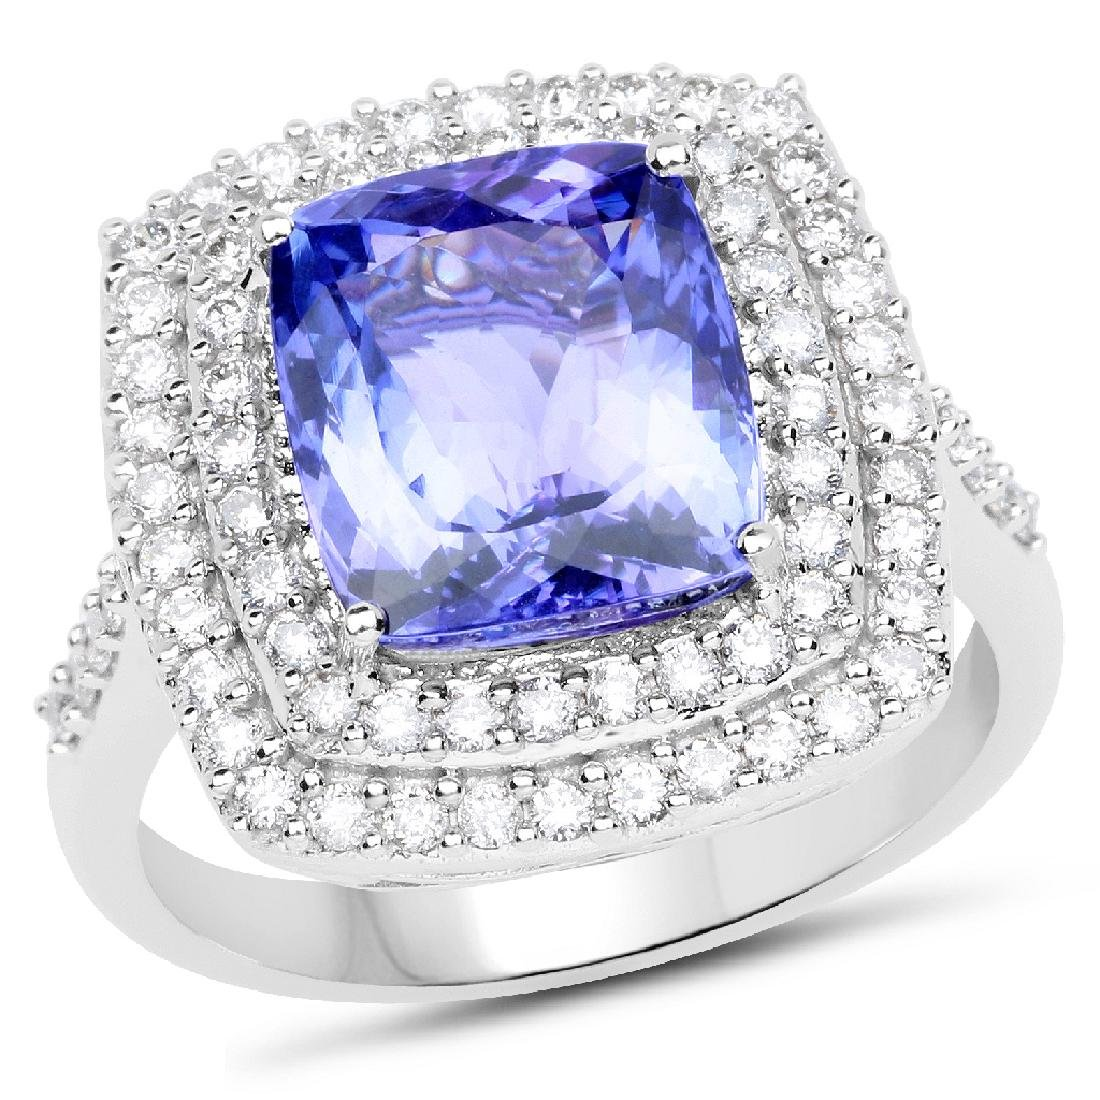 *14 kt. White Gold, 4.69CT Cushion Cut Tanzanite And